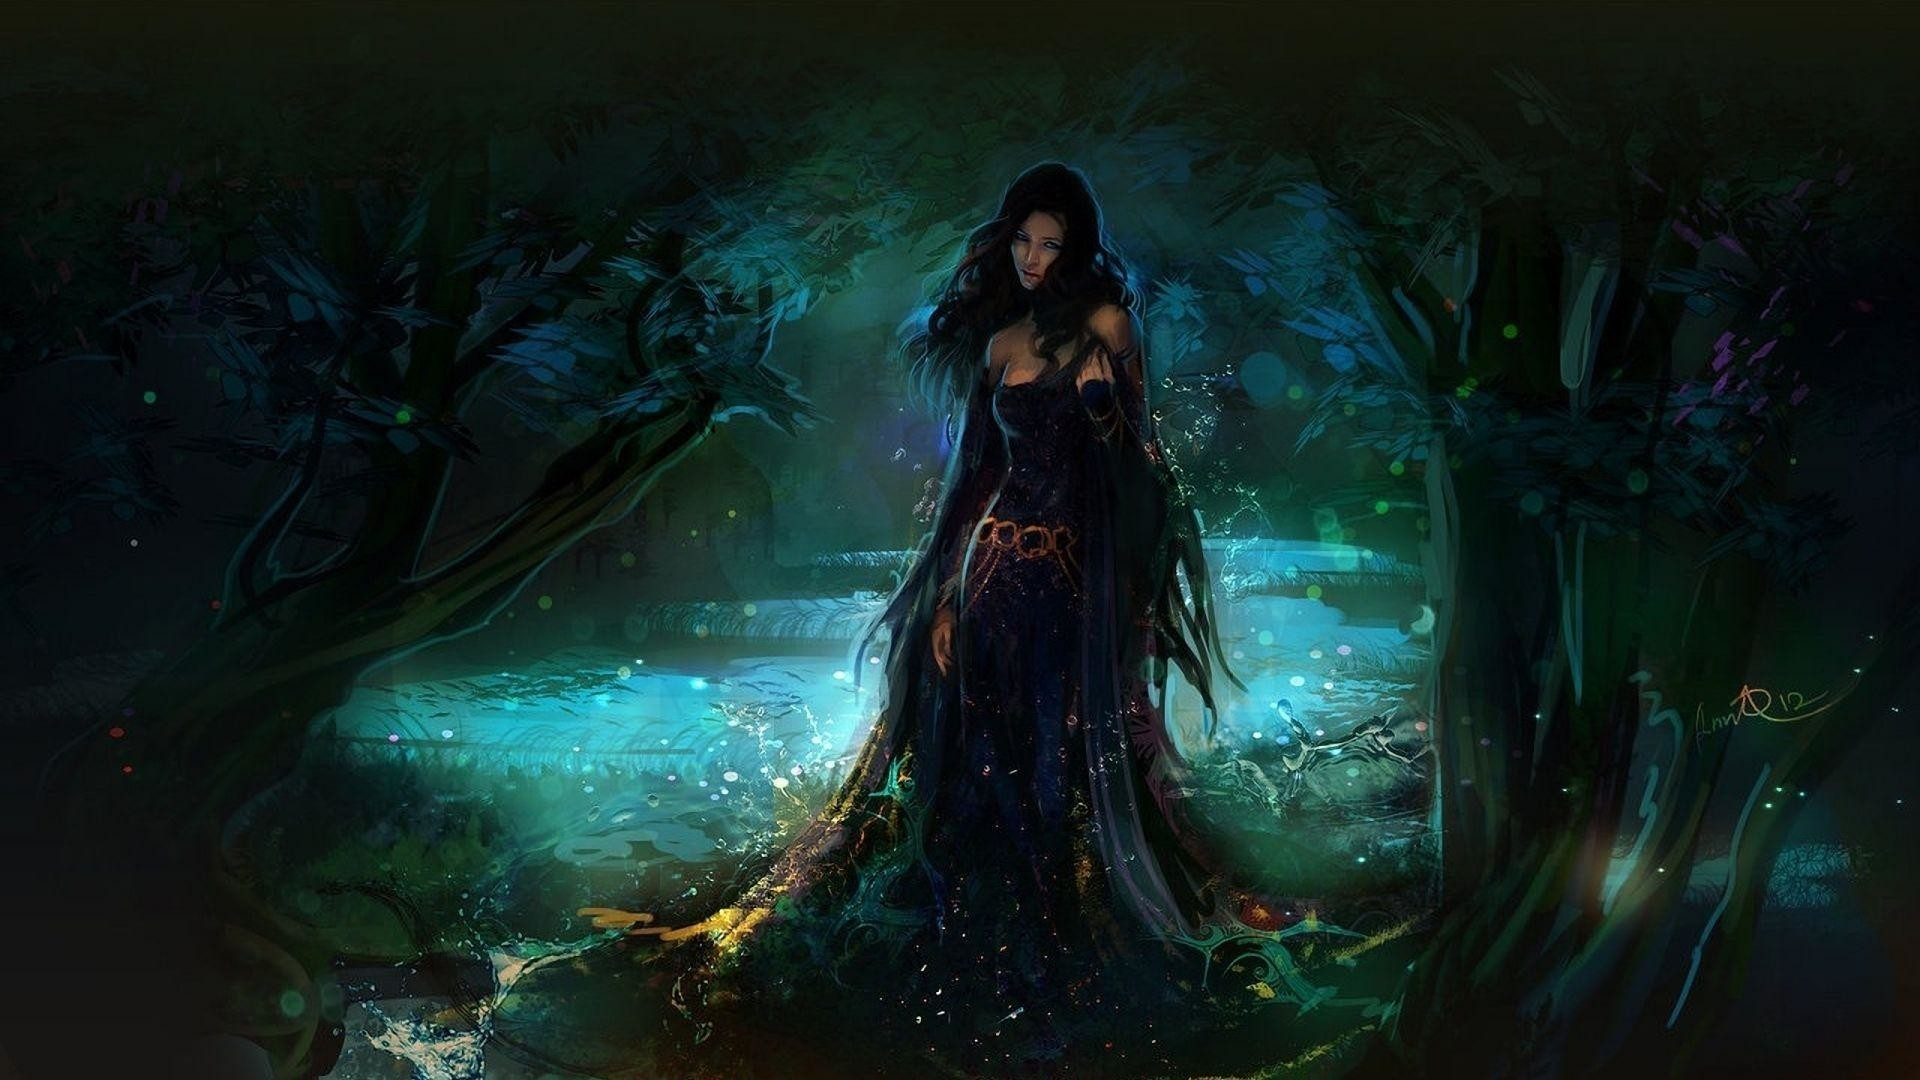 1920x1200 Magic Forest Wallpapers - Full HD wallpaper search